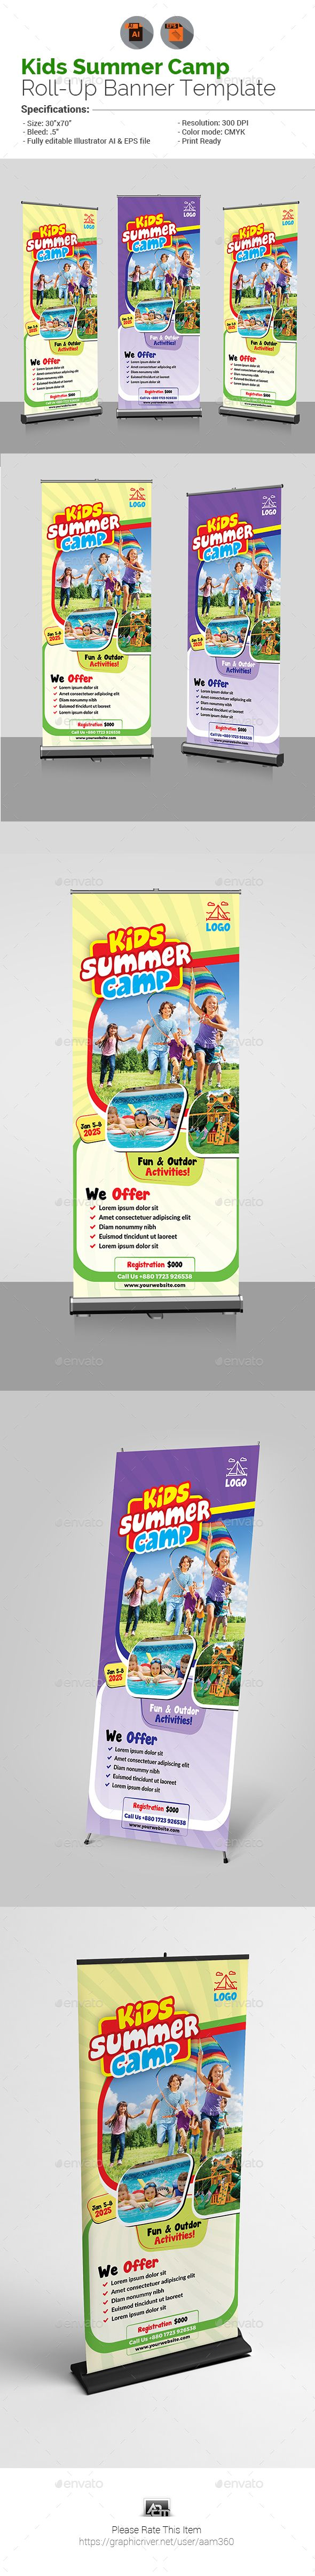 "Kids Summer Camp Roll Up Banner Template by aam360 Similar Templates:INFORMATIONS FOR THIS ROLL-UP BANNER:FEATURES:Size: 30""x70""Bleed: .5""Two Color VariationsFully editable Illustra"